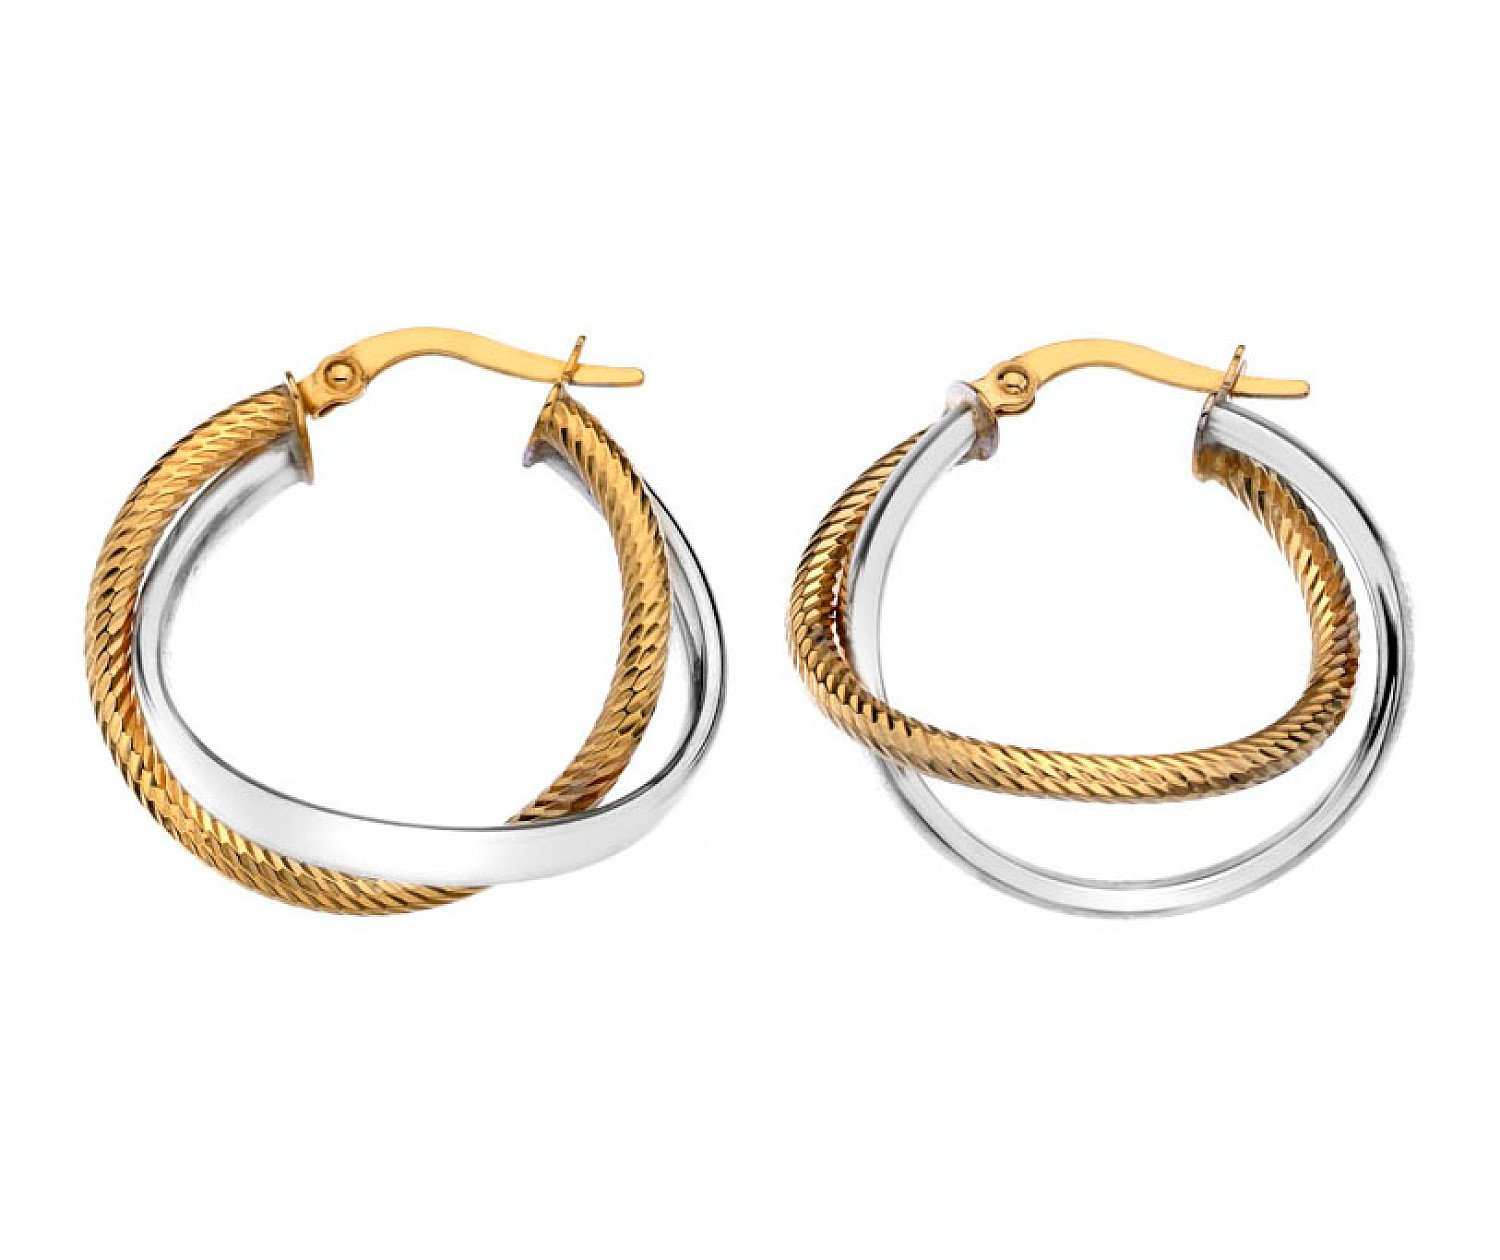 OVER 50 STYLES OF HOOP EARRINGS IN SILVER AND GOLD